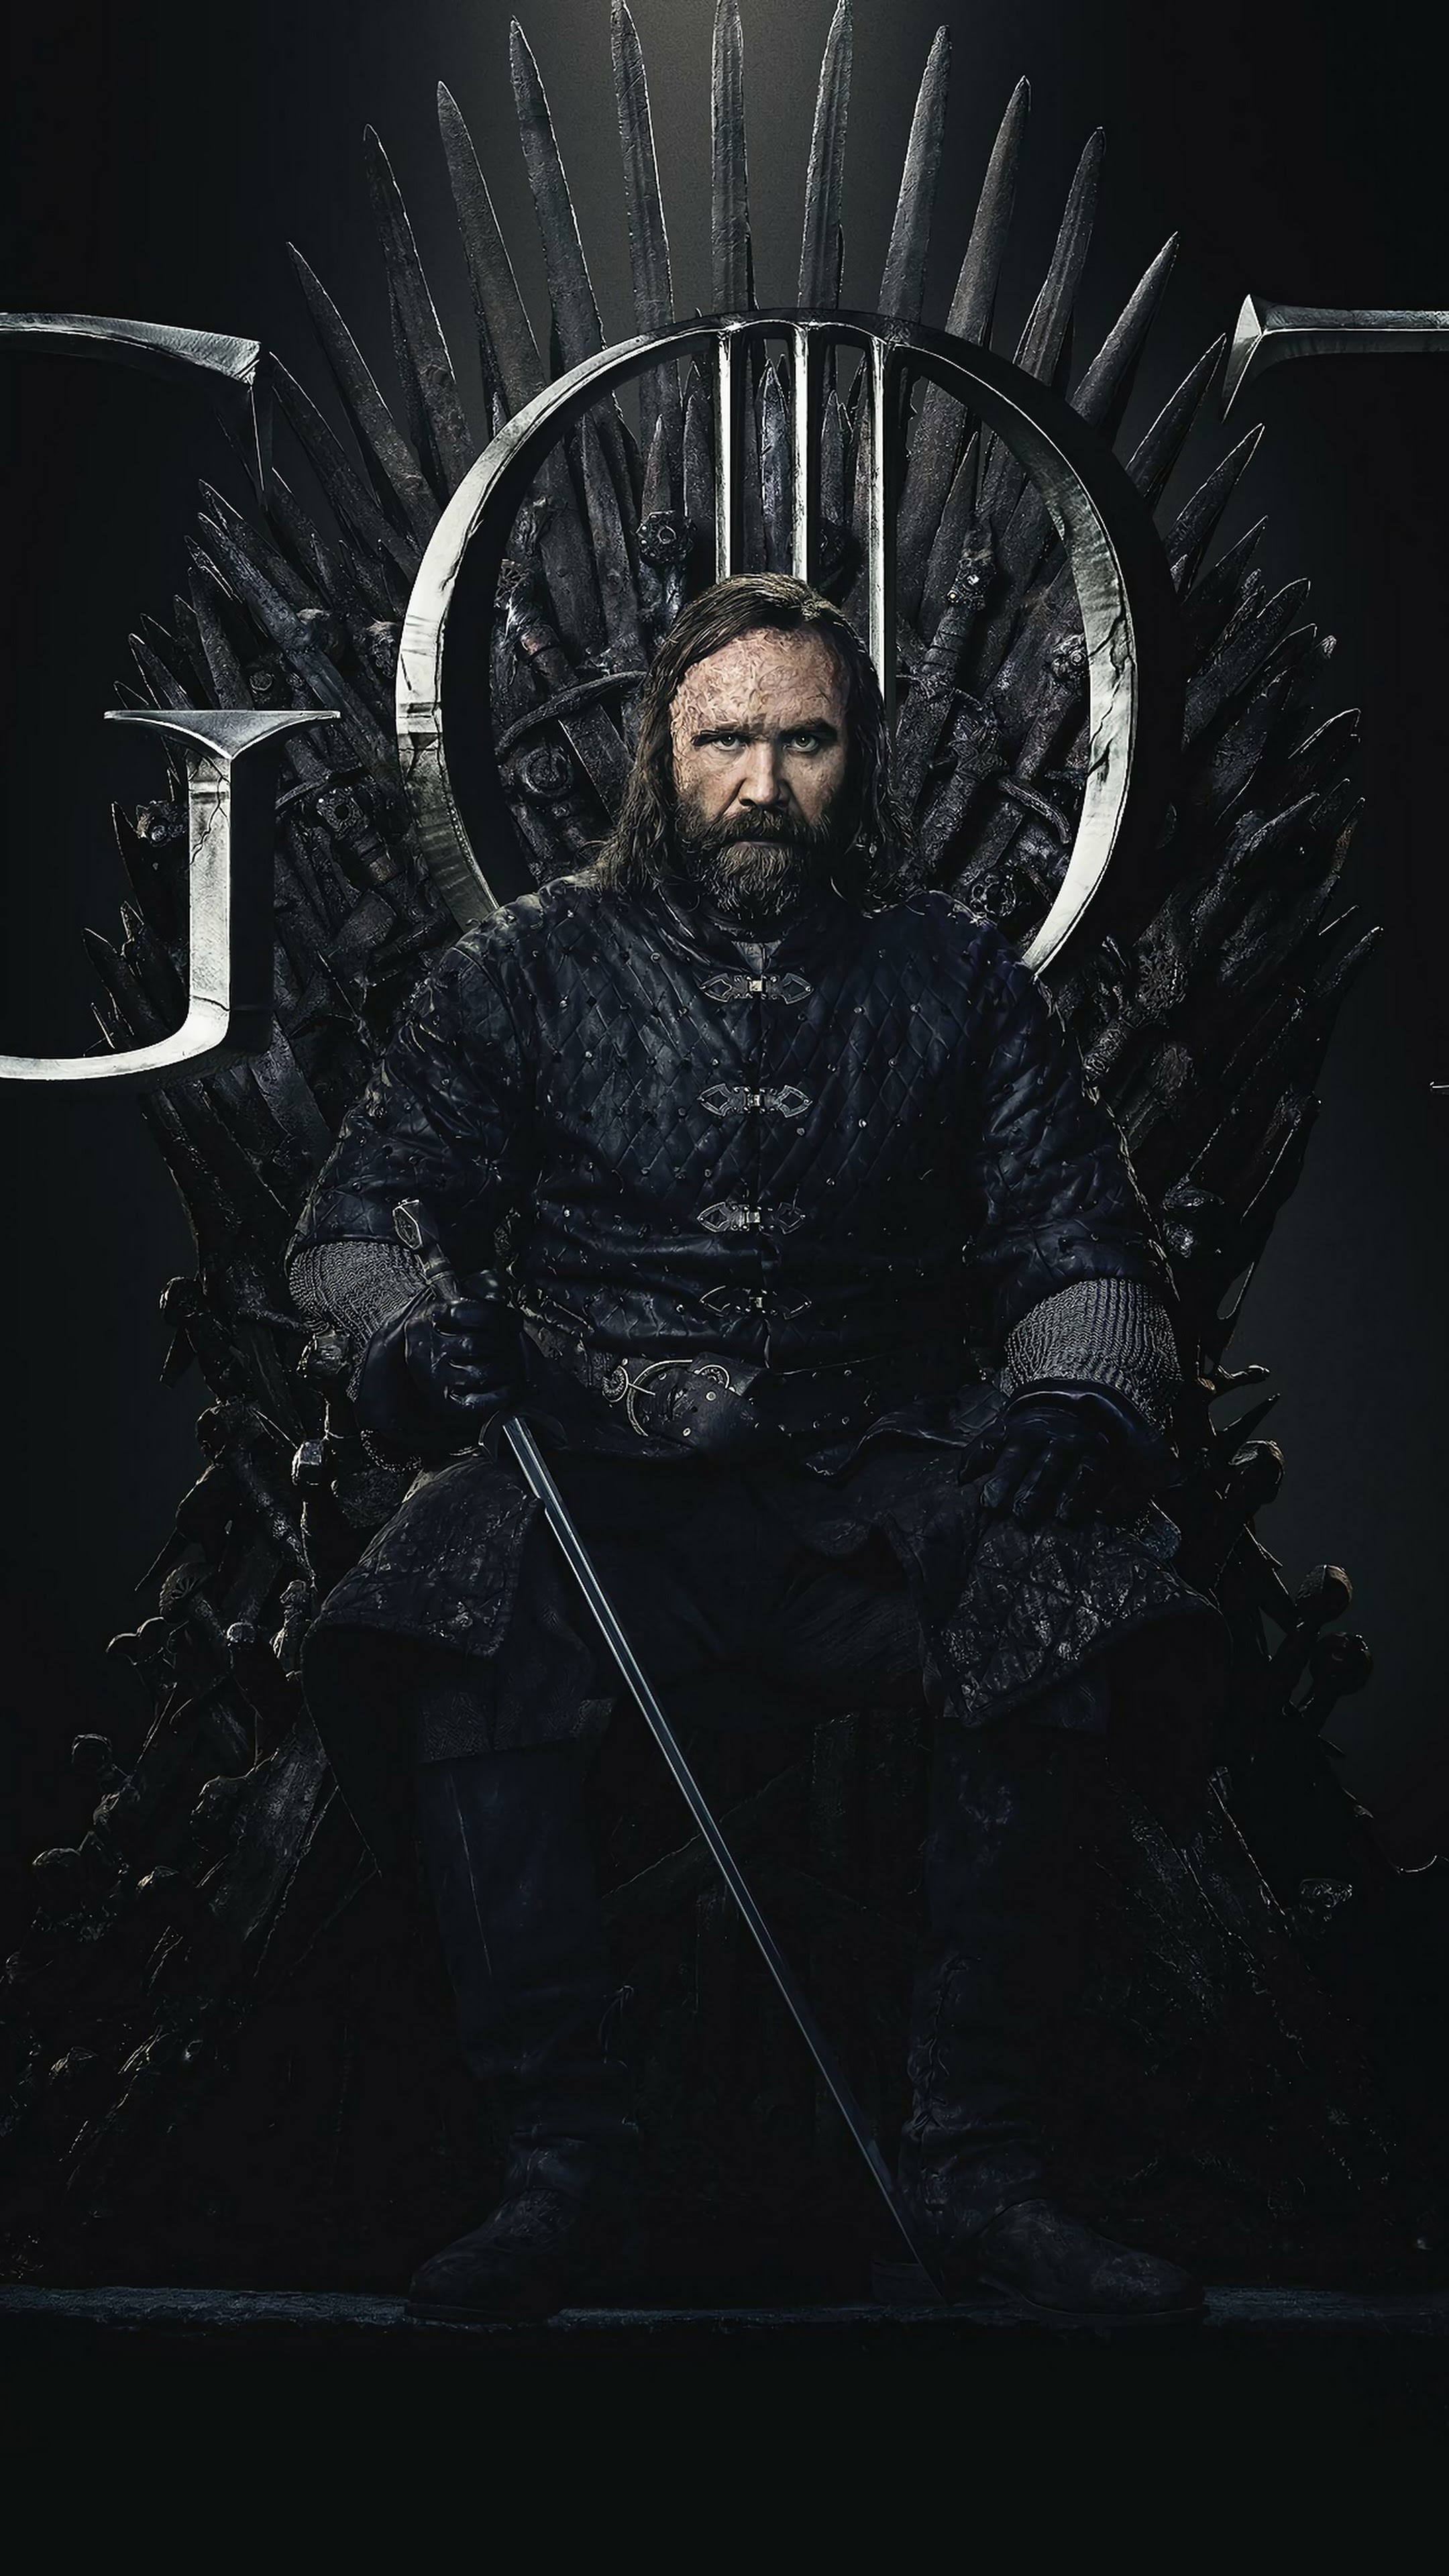 Sandor Clegane The Hound Game Of Thrones Season 8 4k Wallpaper 9